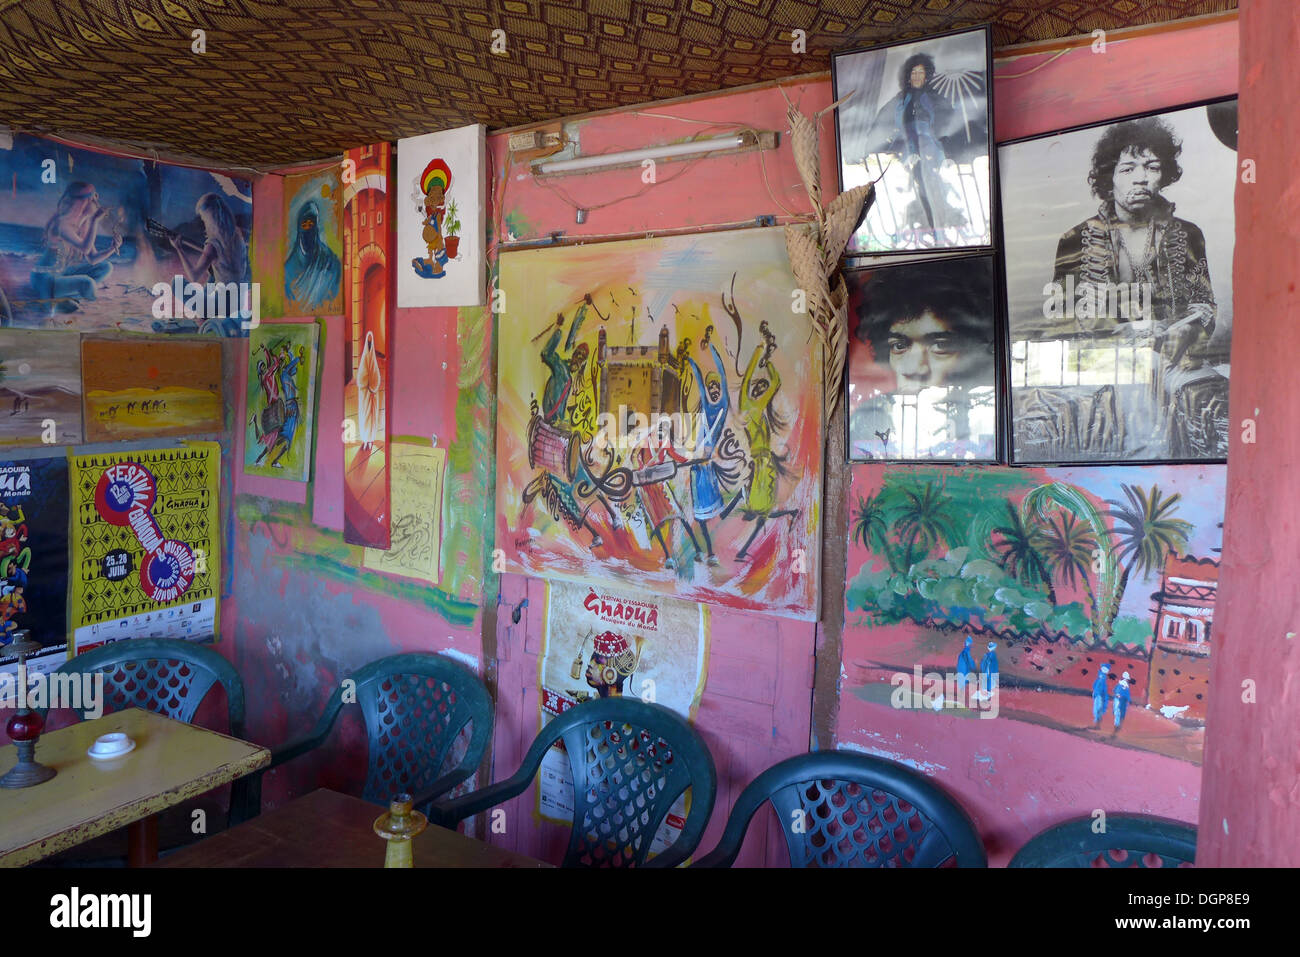 Morocco - Essaouira Cafe frequented by Jimi Hendrix in the 1960s, at Diabat. Stock Photo